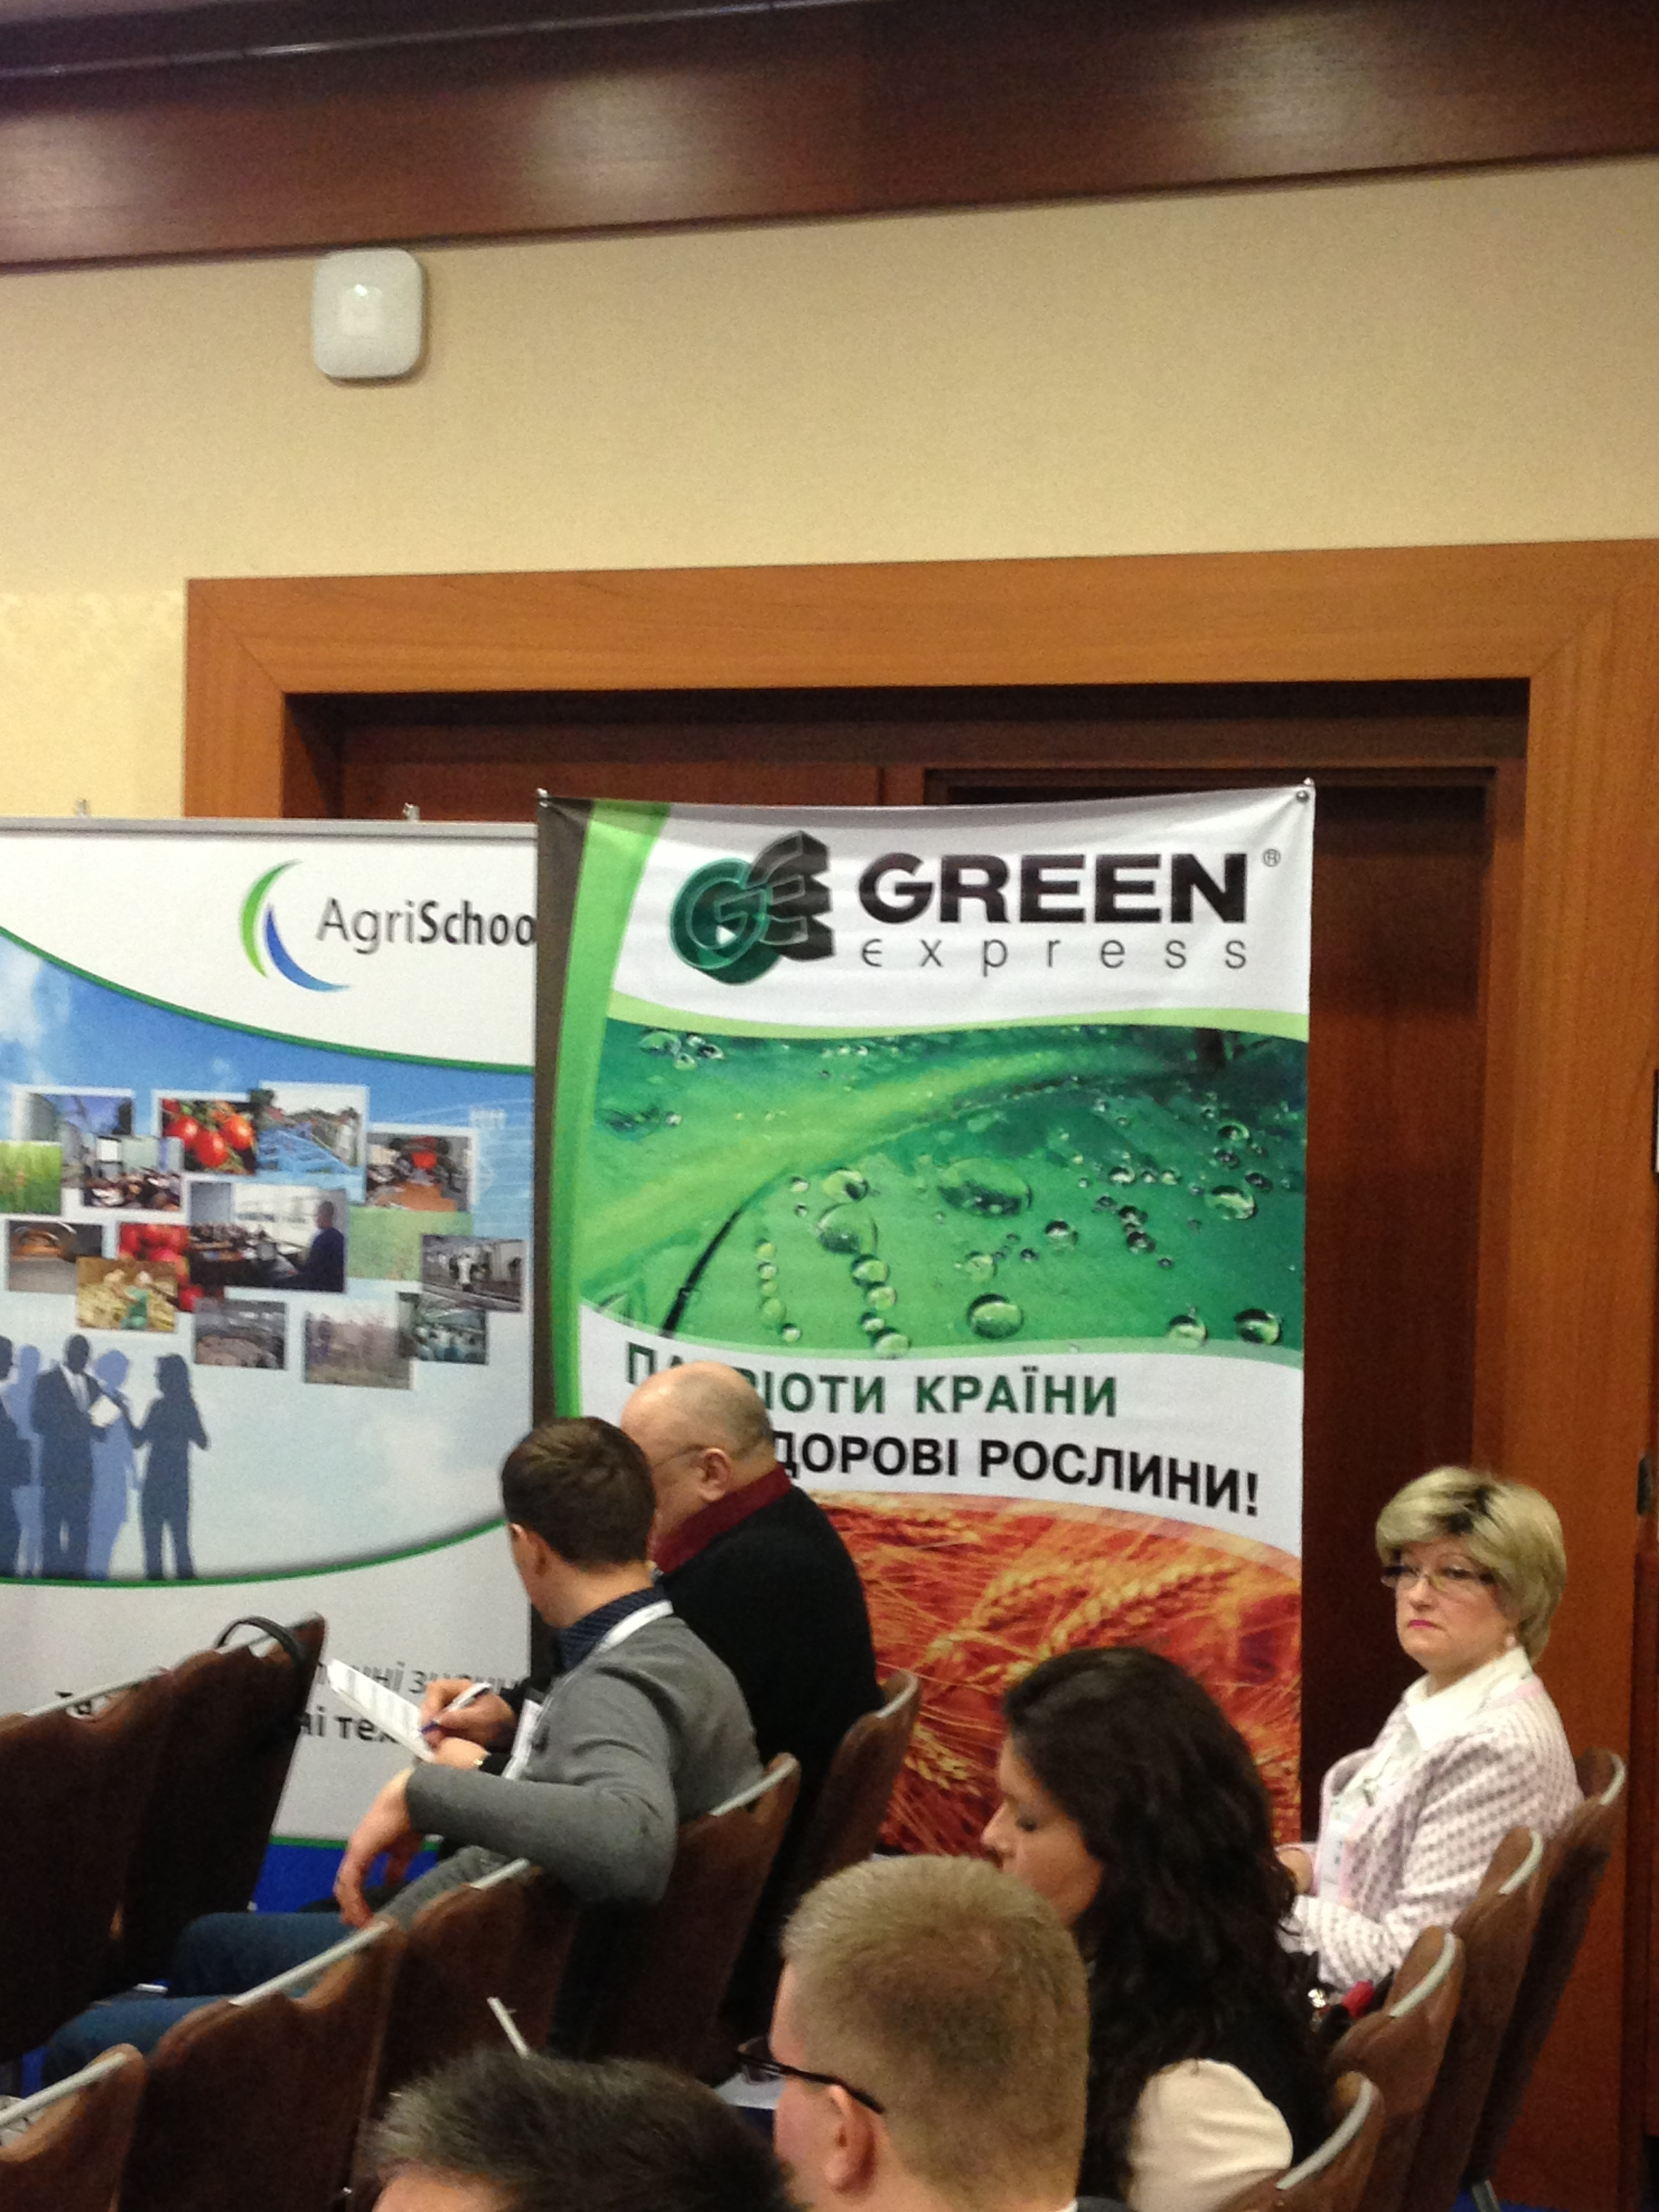 Green Express Company was a silver sponsor of the International Forum